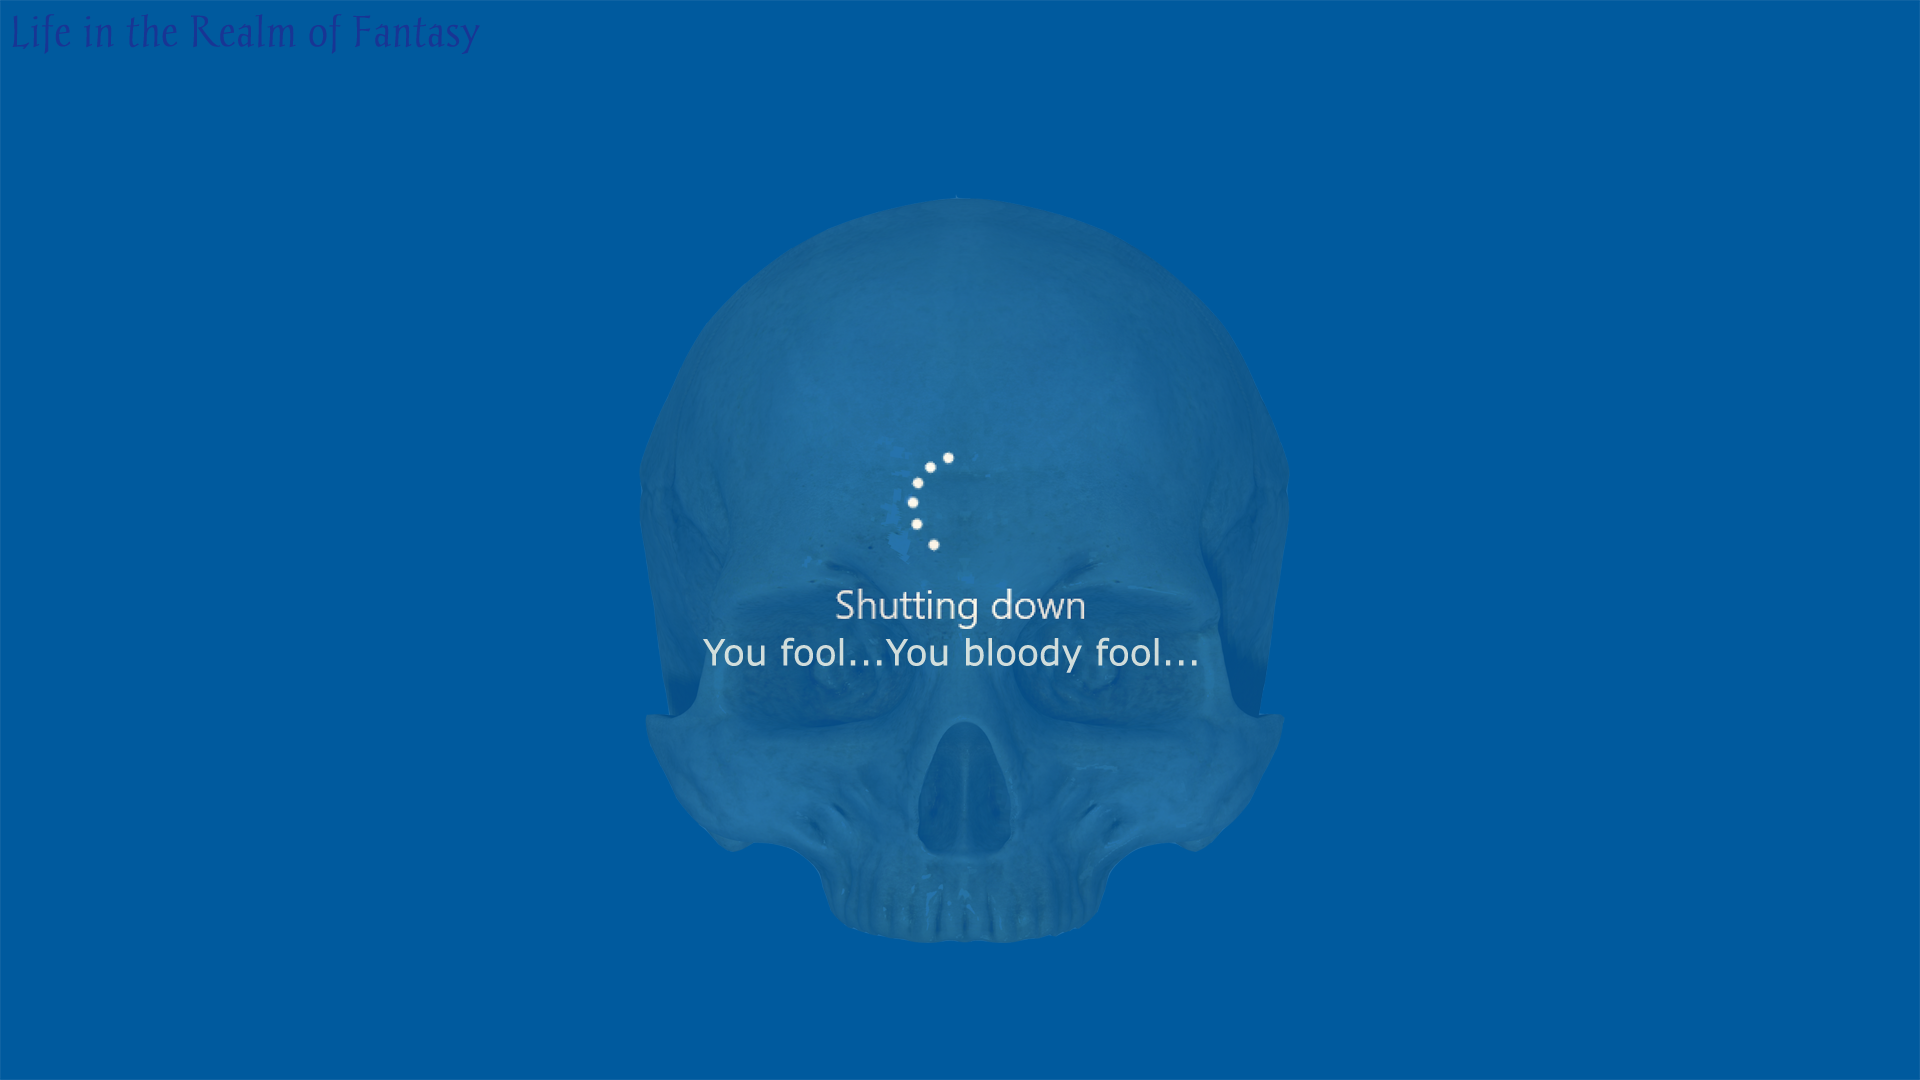 Windows 10 Blue Screen Of Death Life In The Realm Of Fantasy